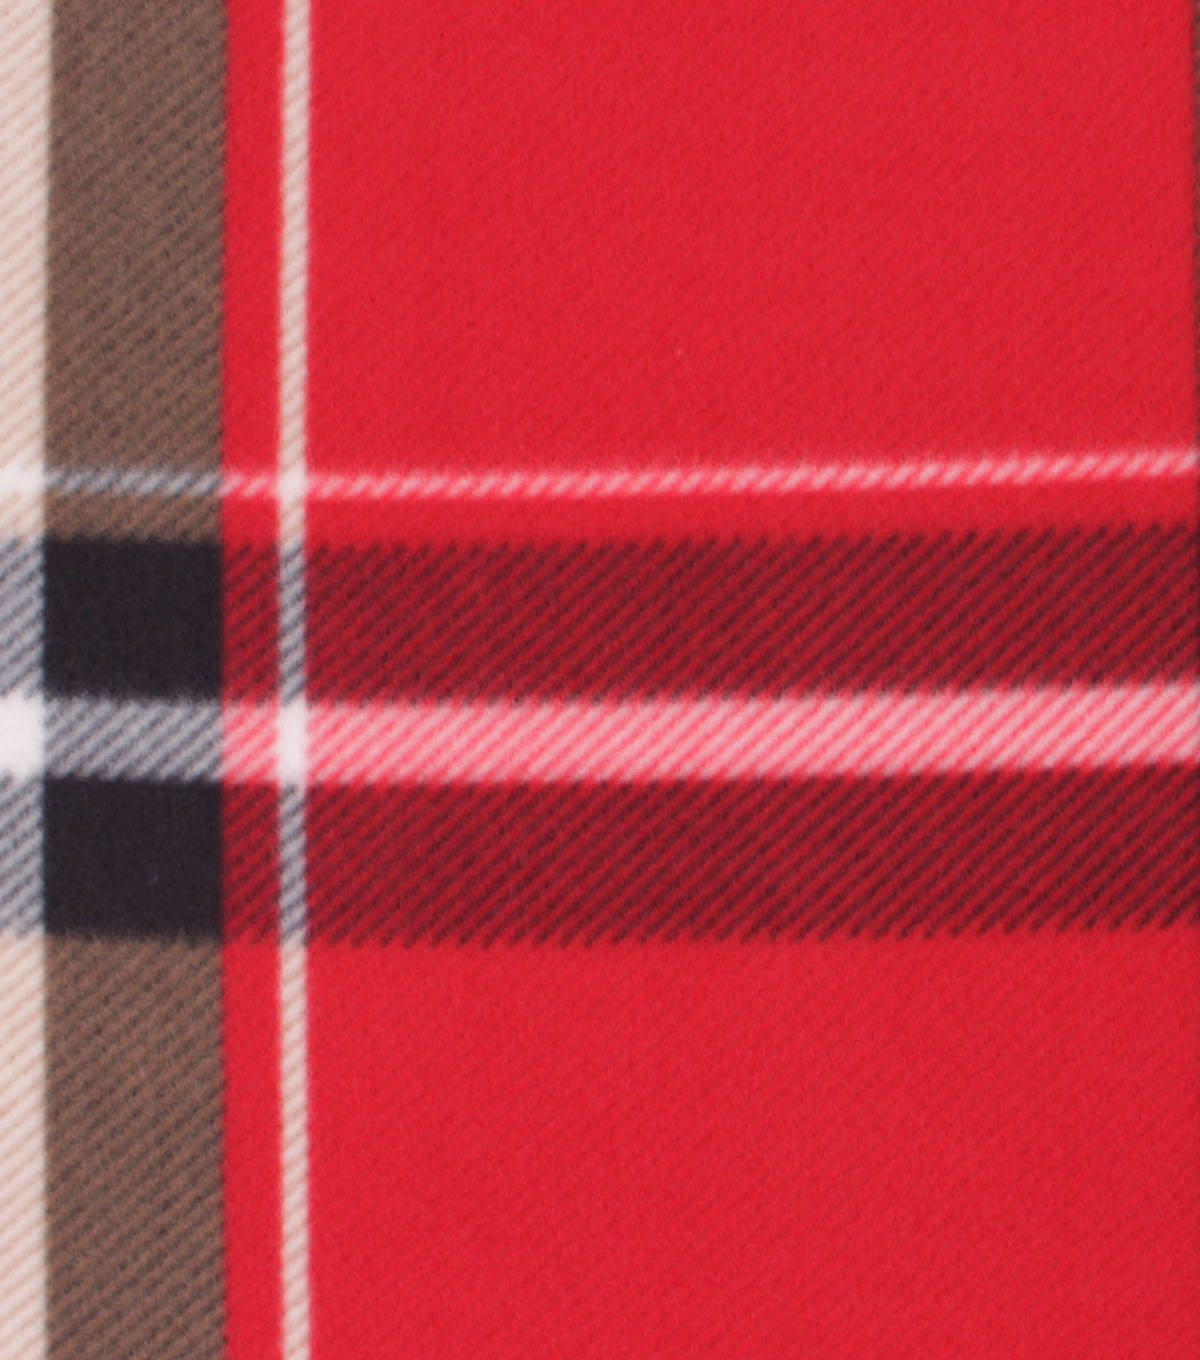 Blizzard Fleece Fabric-Bryce Red & Brown Plaid